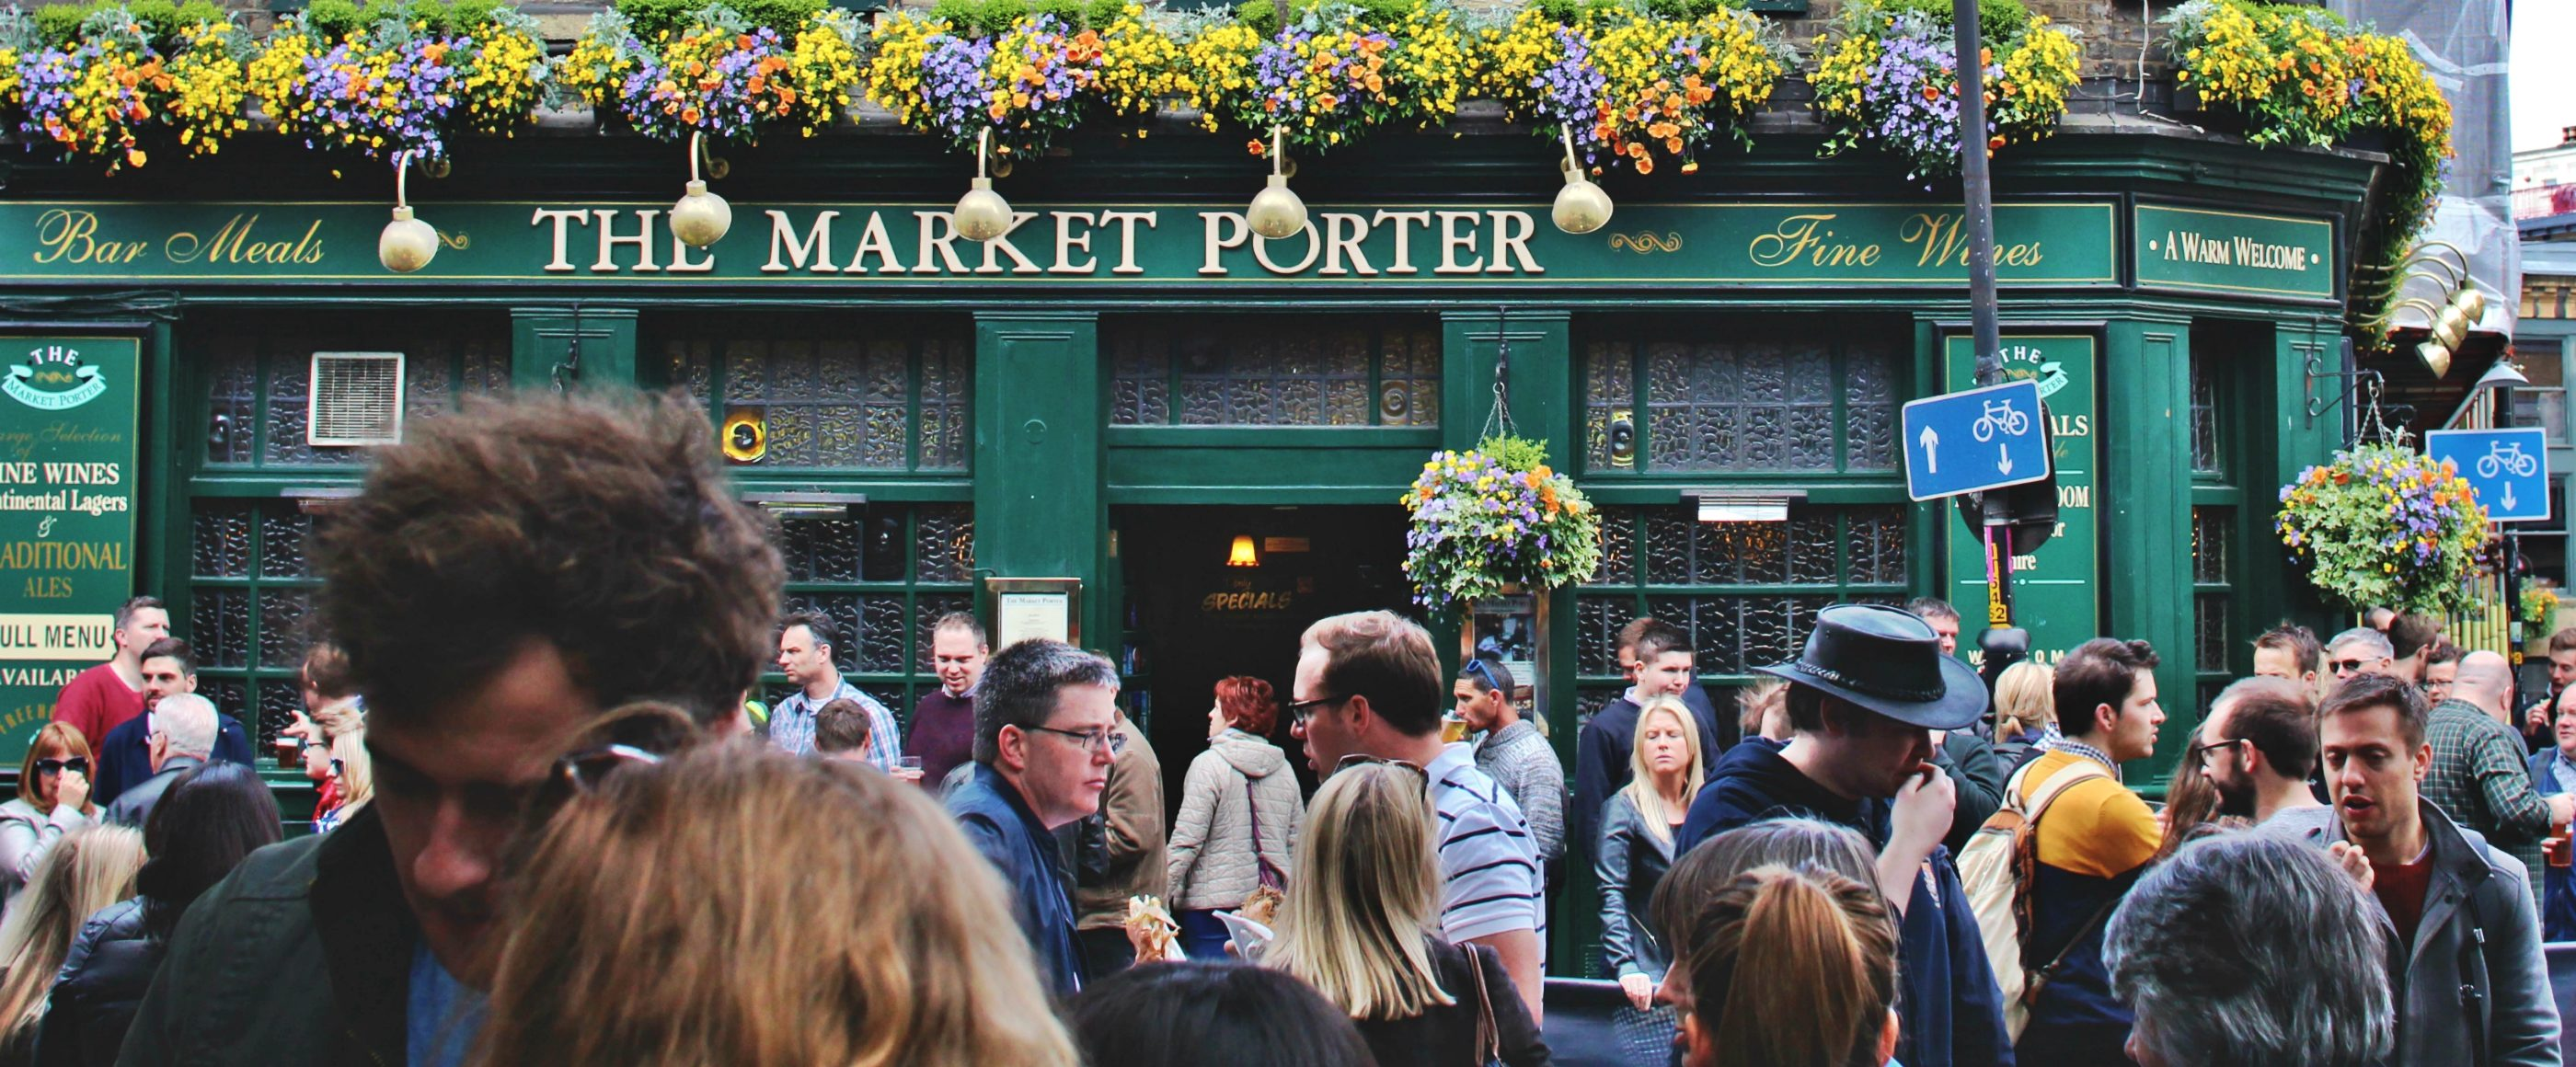 The Market Porter customers